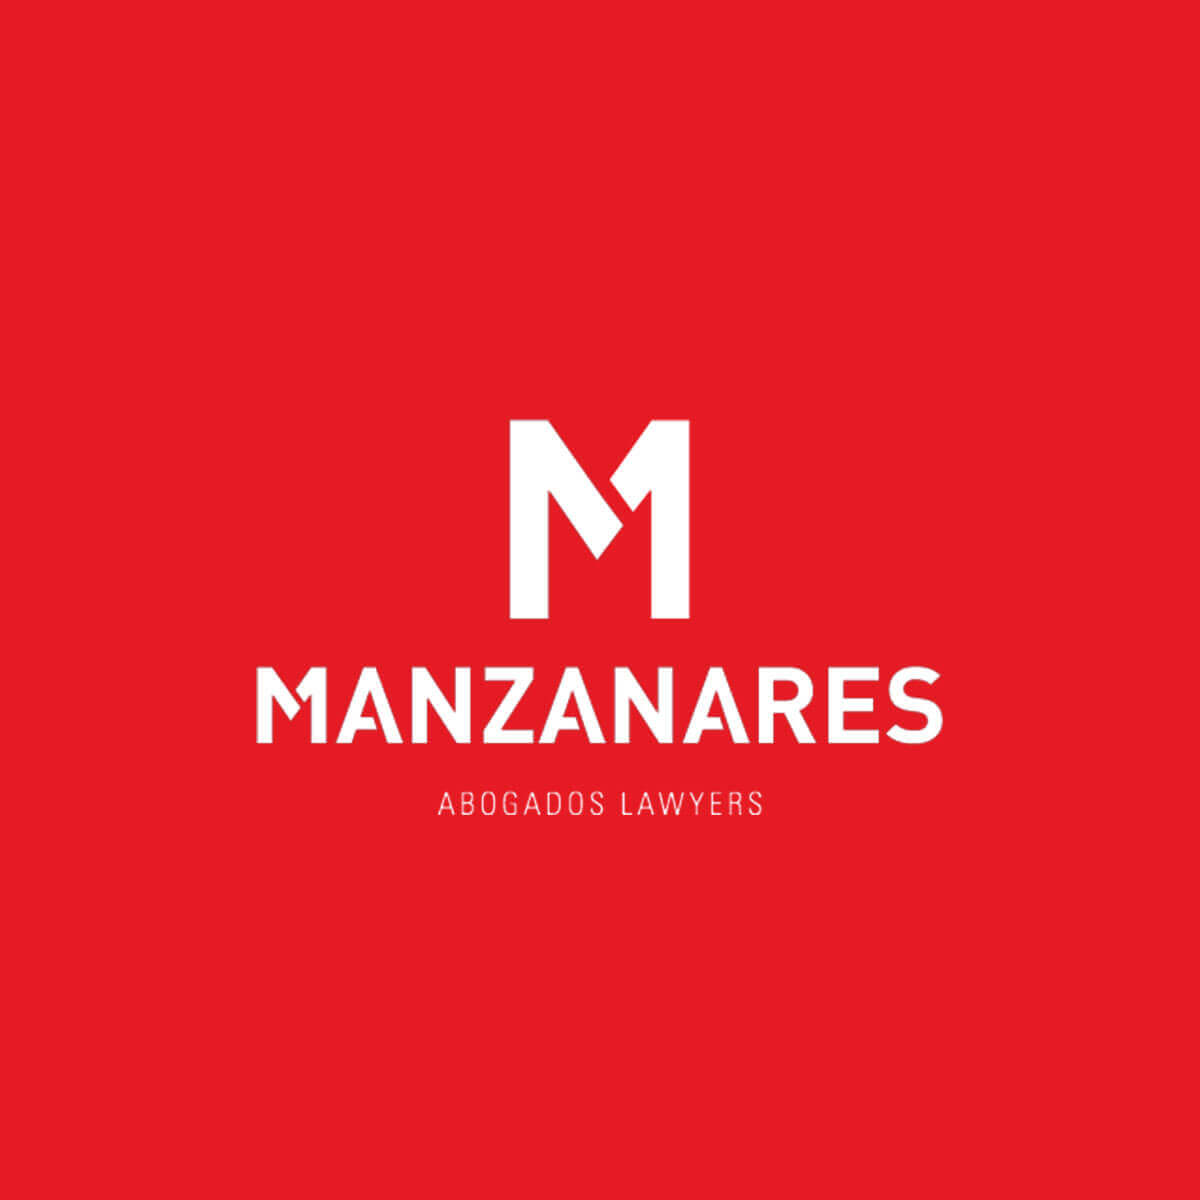 Manzanares International Lawyers. Building trust